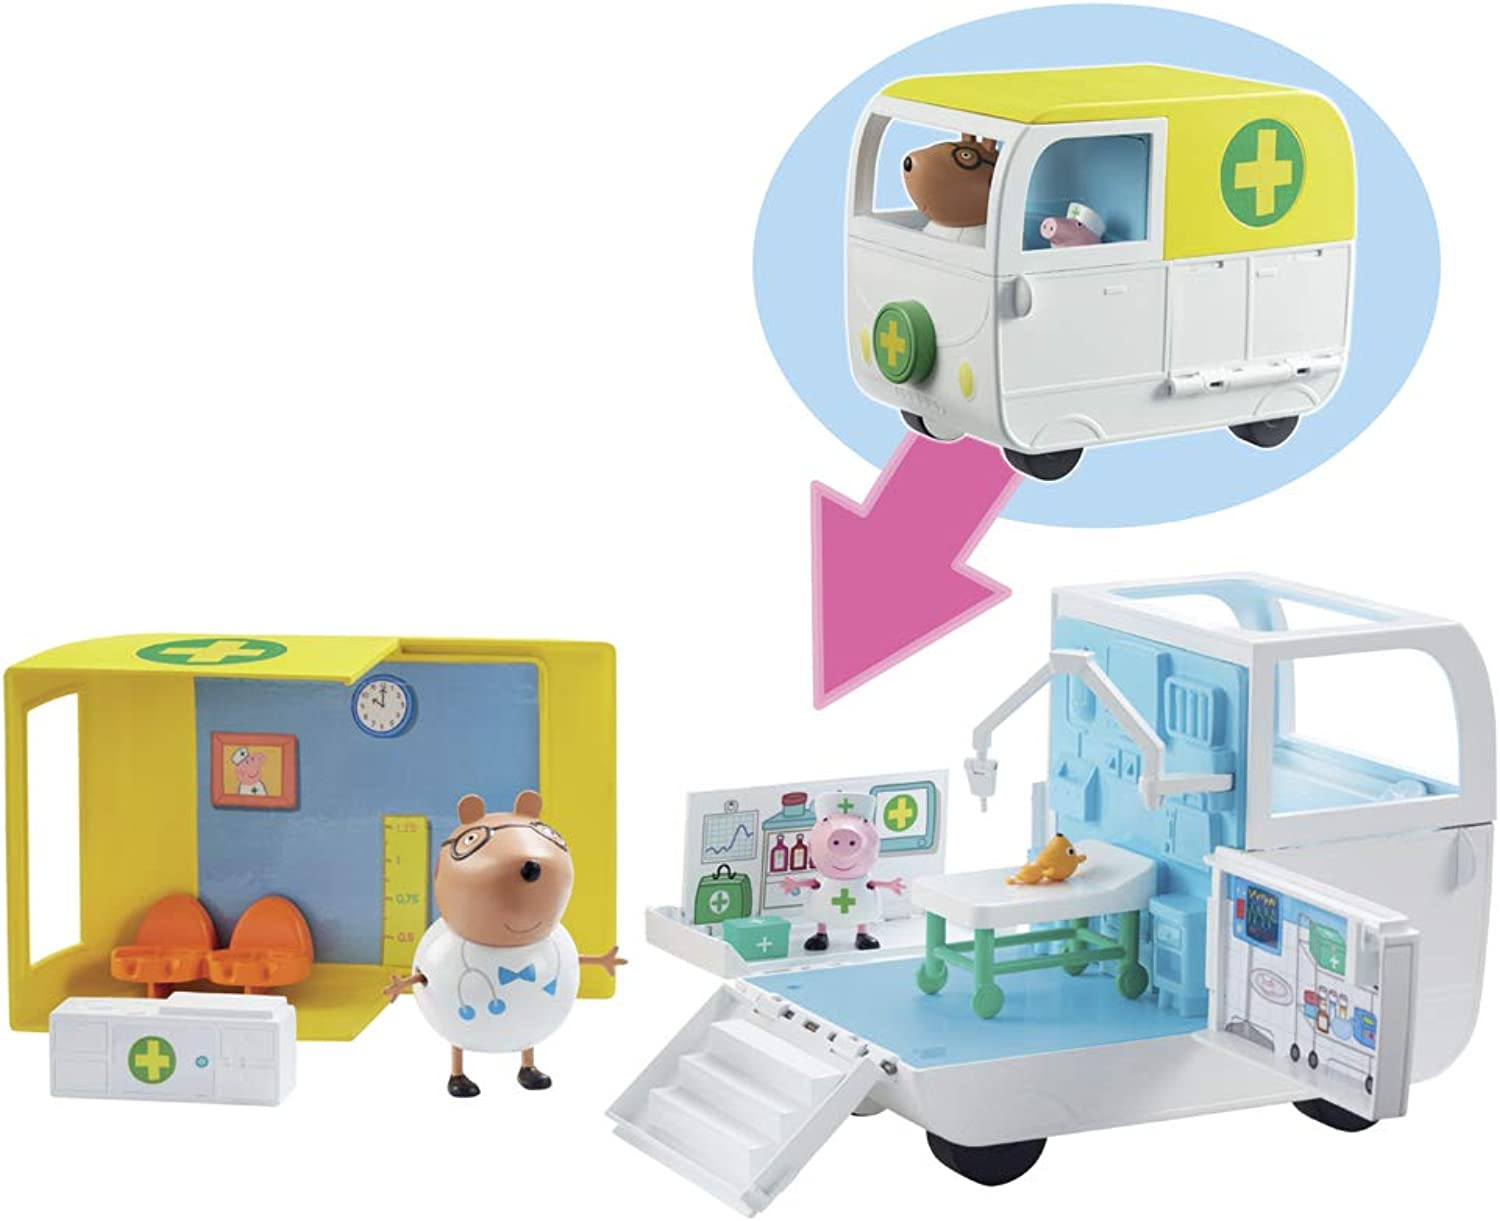 Peppa Pig Medical Mobile Centre Playset with Dr Brown Bear Figure